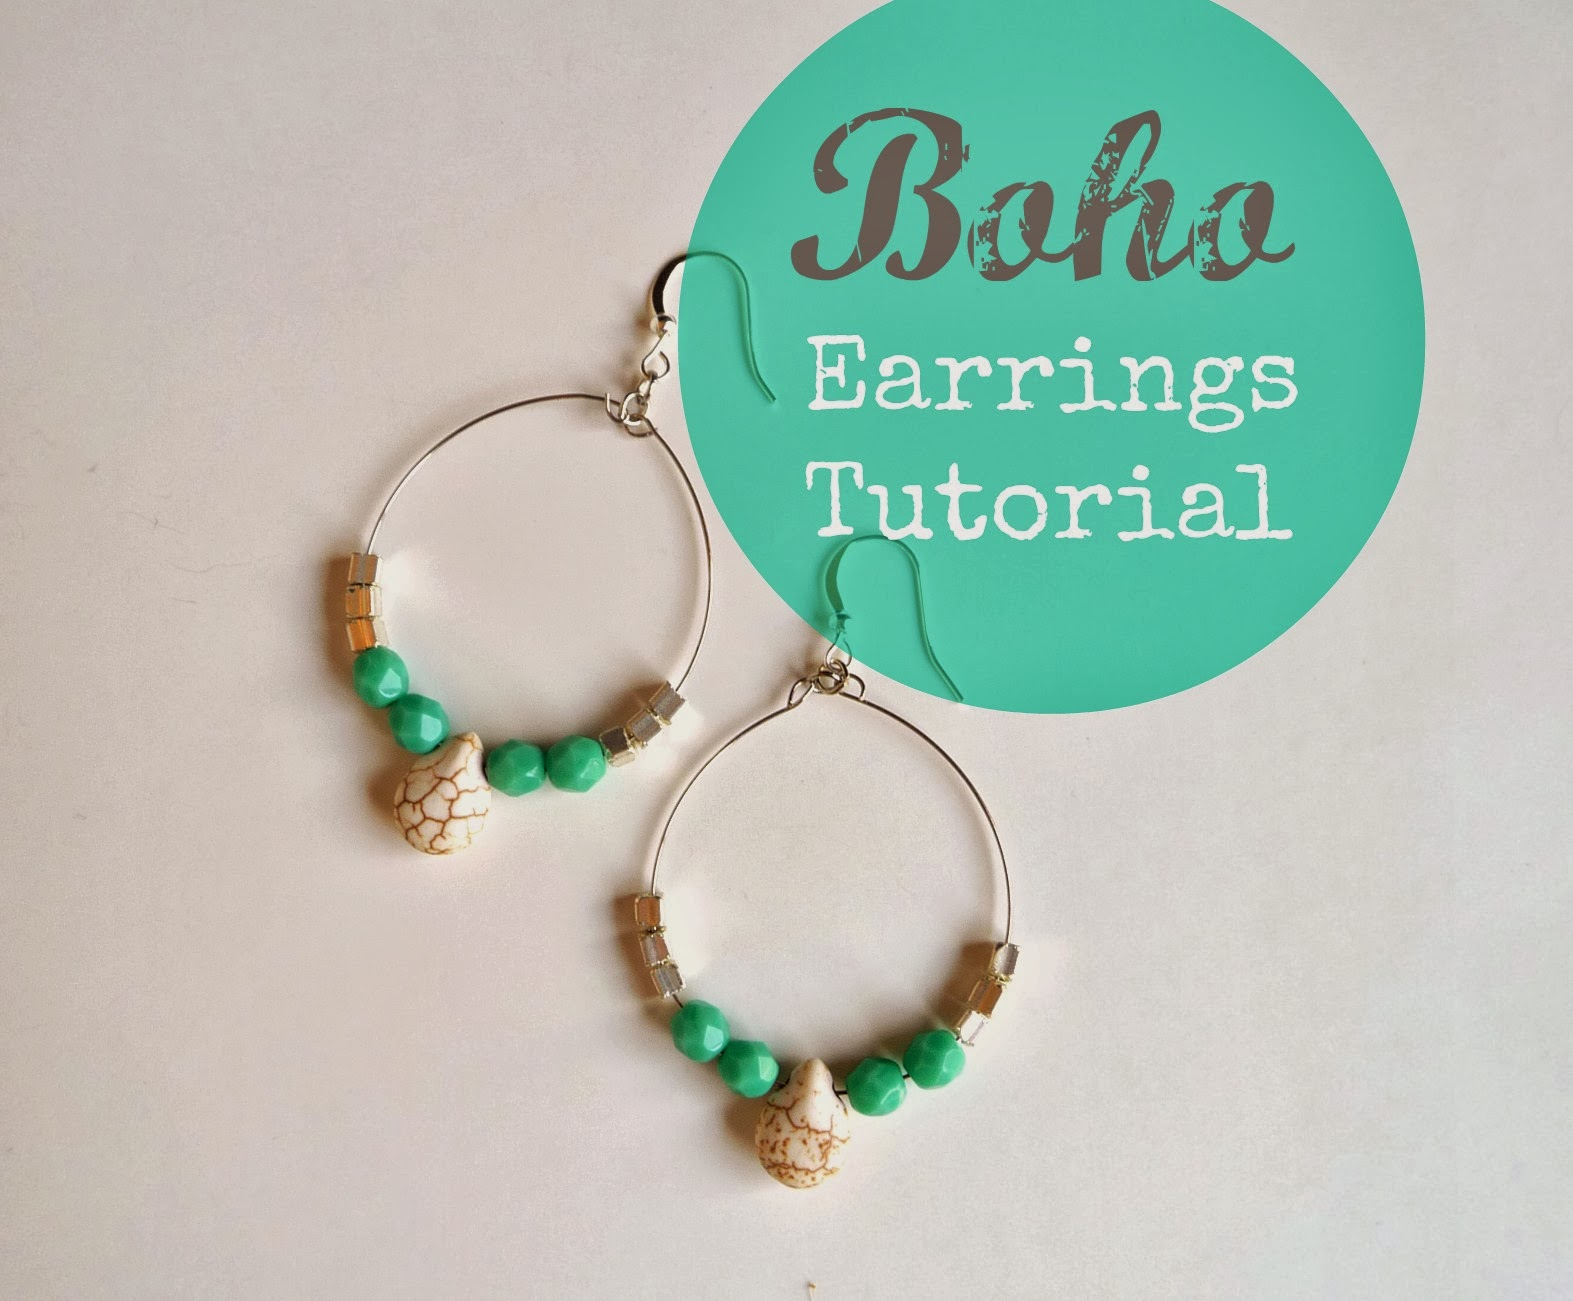 http://www.domesticblisssquared.com/2013/09/boho-earrings-tutorial.html